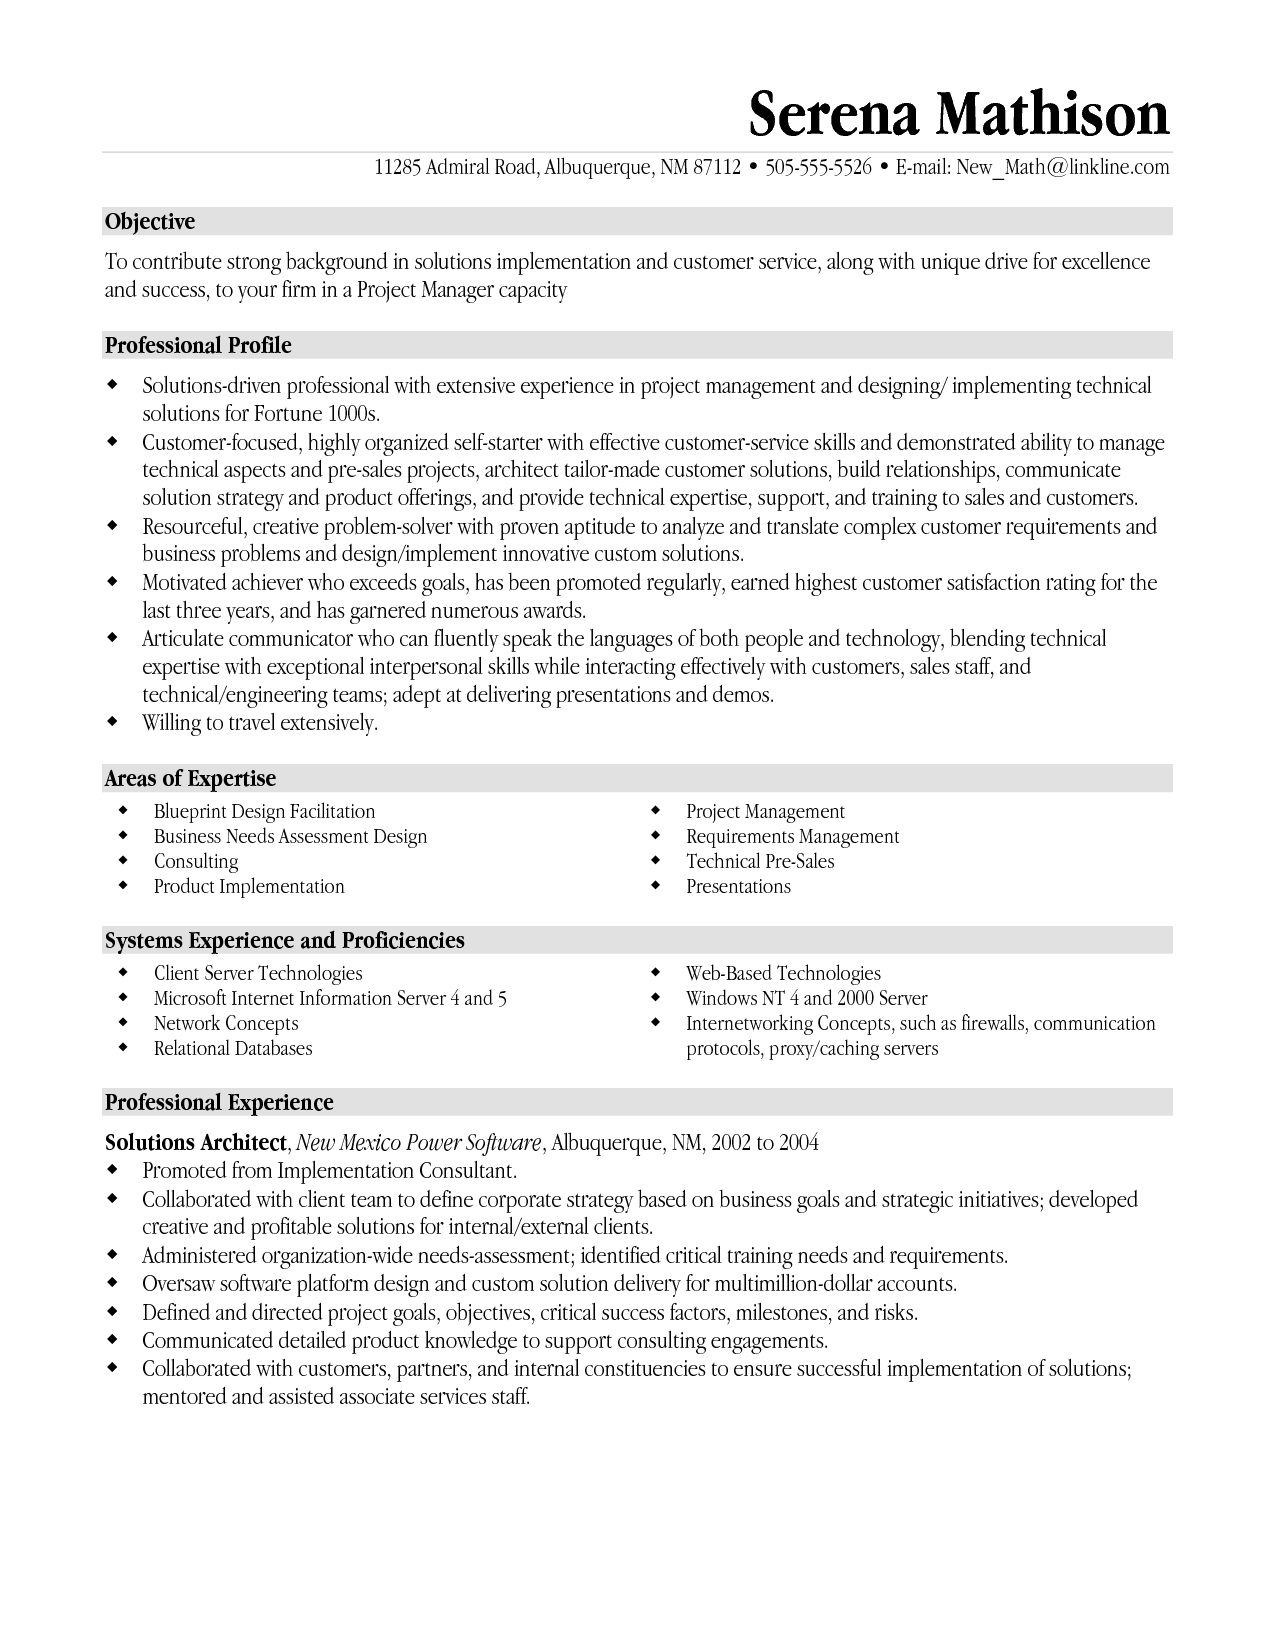 Project Management Resume Objectives